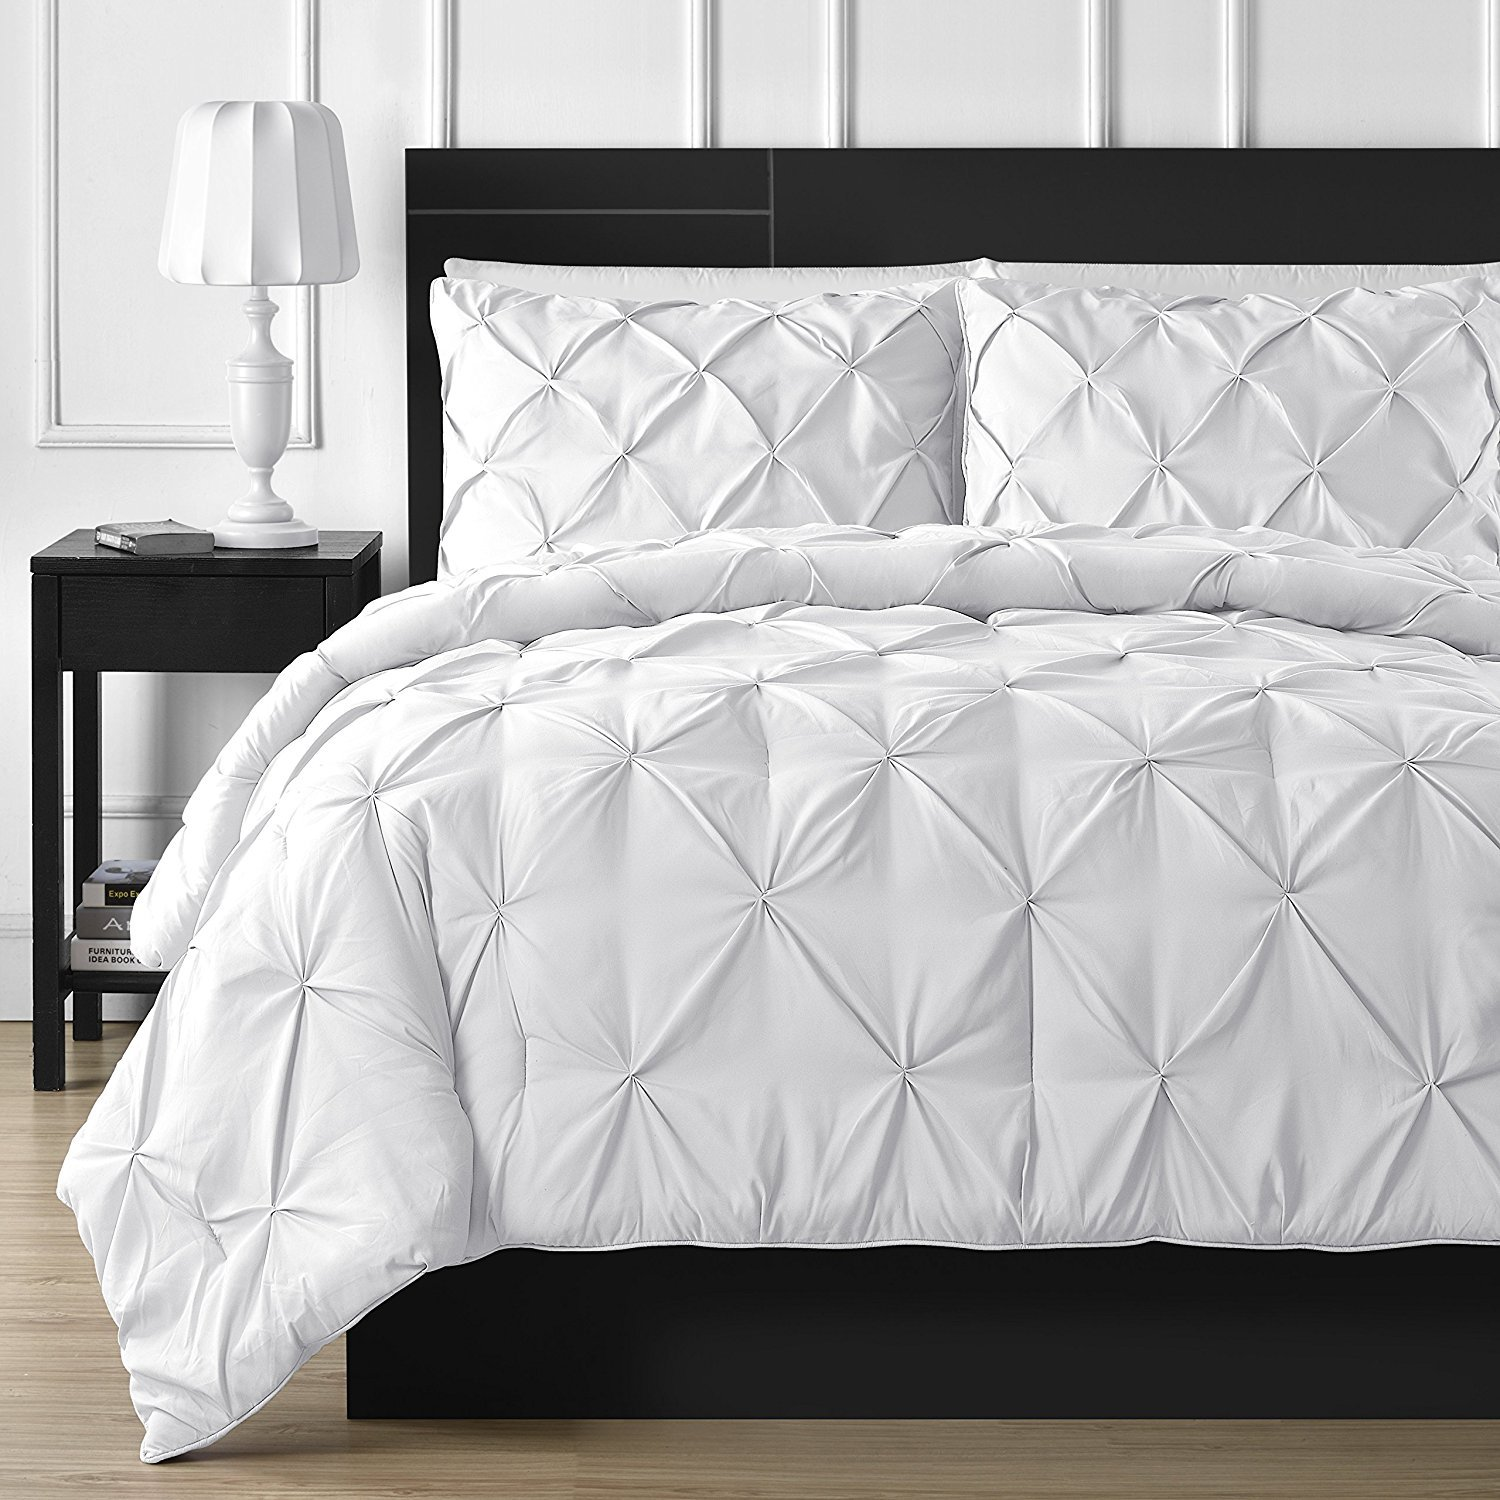 Comfy Lecho PREMIUM QUALITY BEDDING COLLECTION!Ultra-Soft Luxurious 2-Pc PINCH PLEATED PINTUCK Decorative Pillow Shams,Finest Quality Egyptian Cotton,800 TC Comforter Cover by (King, White)